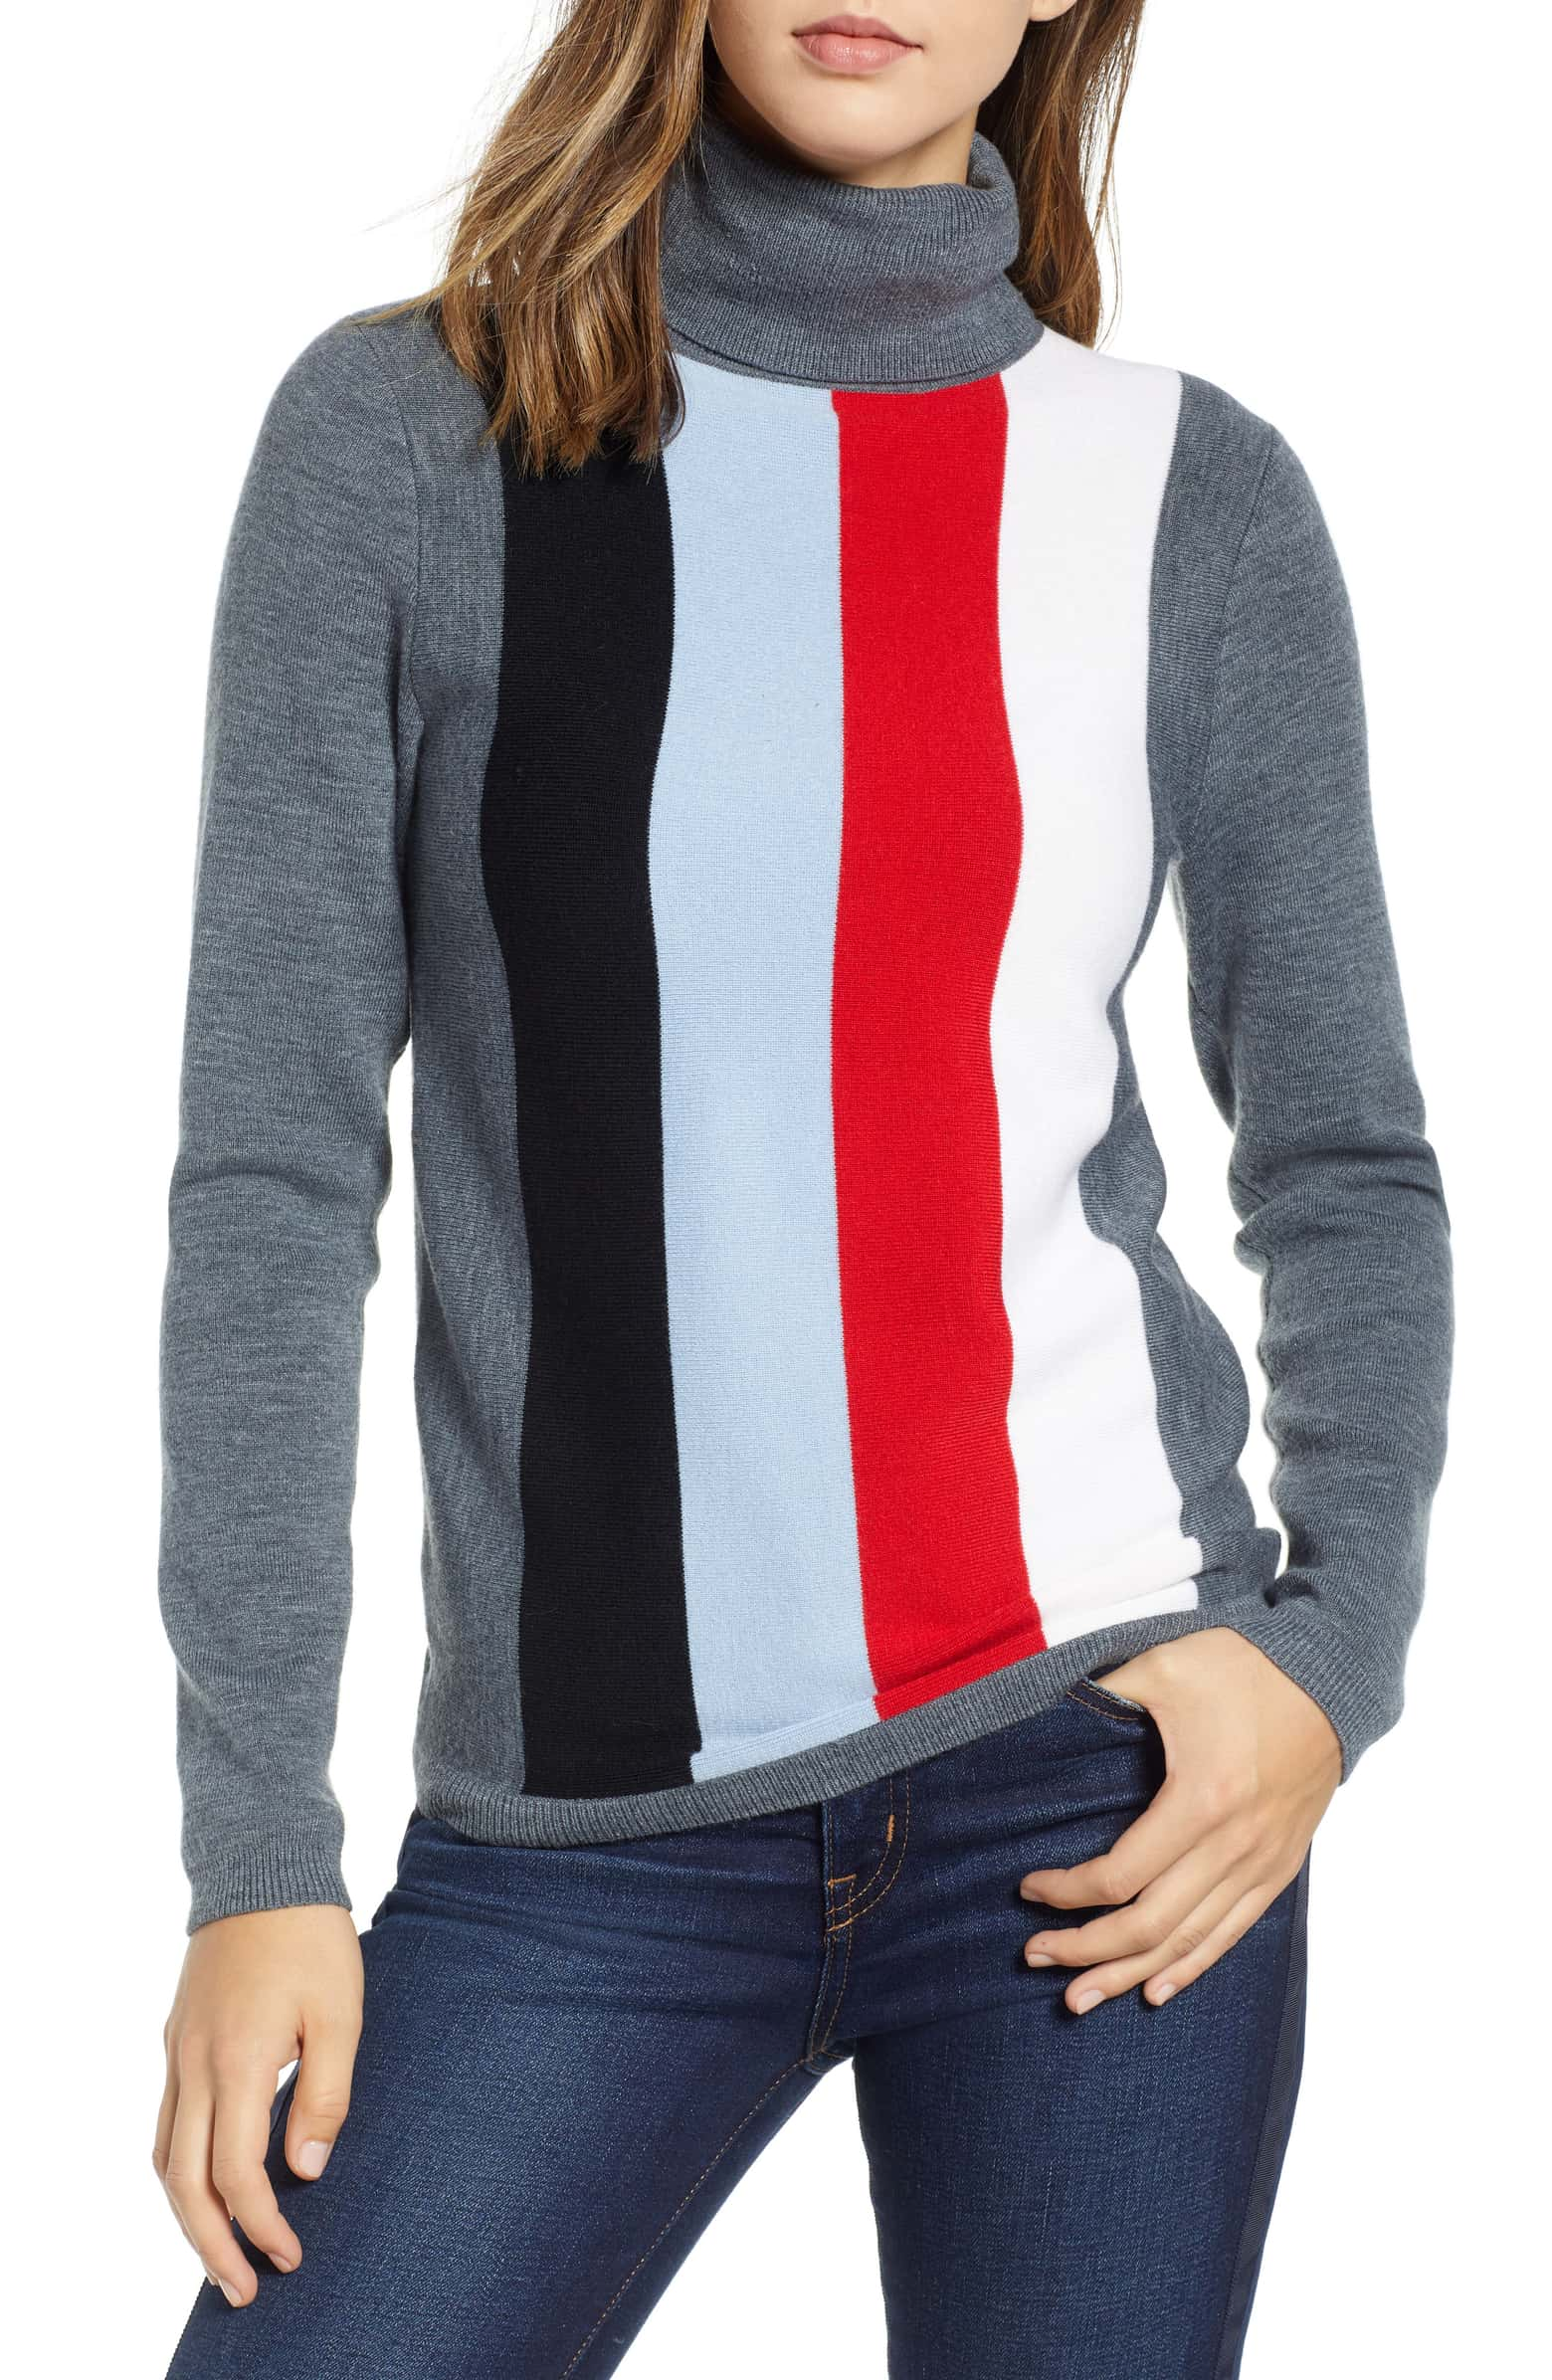 (Brand New with Tags) Nordstrom 1901 Fitted Turtleneck Sweater, Size XS